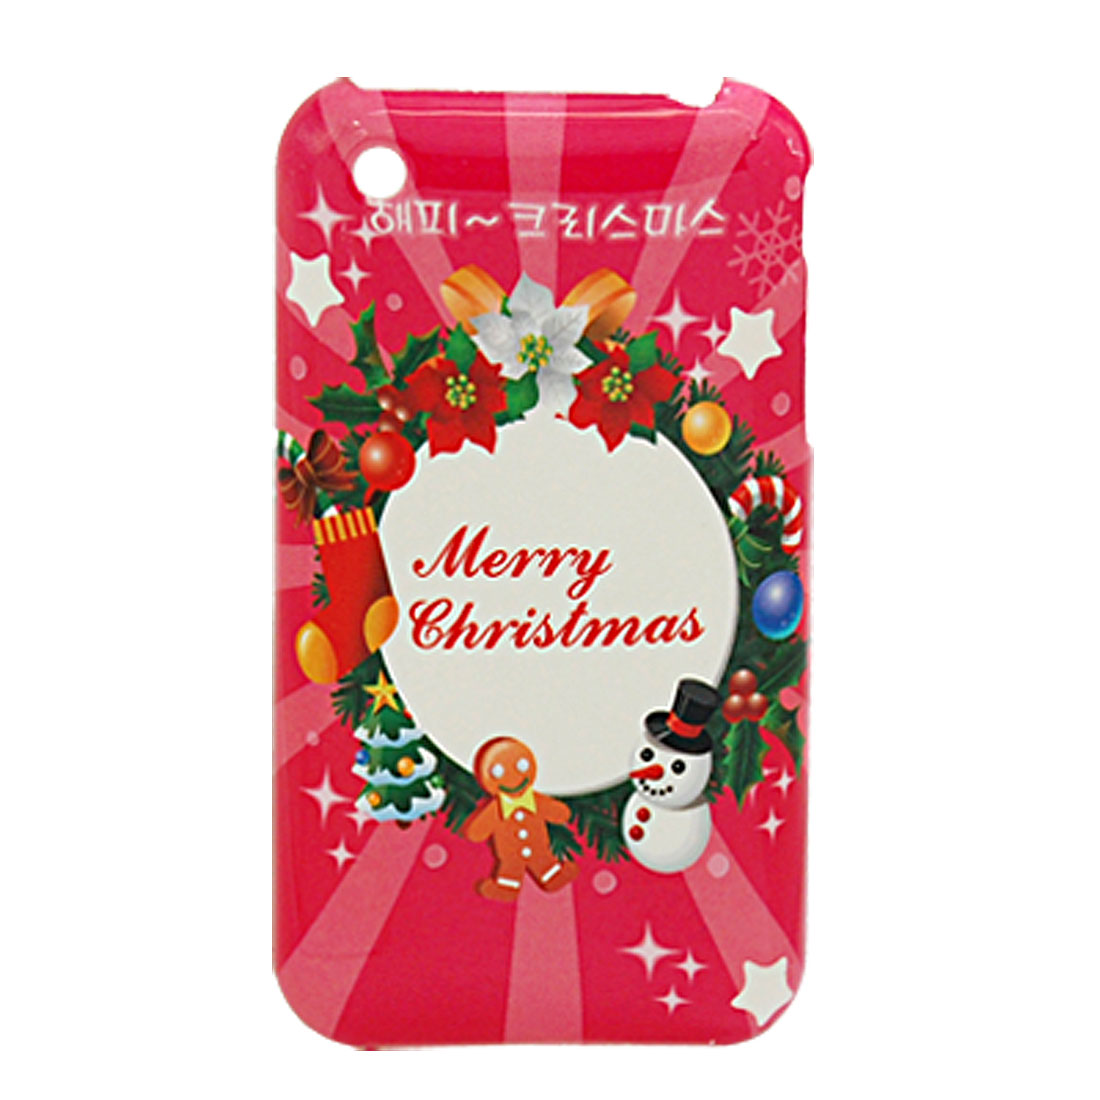 Christmas Theme Hard Plastic Case Cover for Apple iPhone 3G